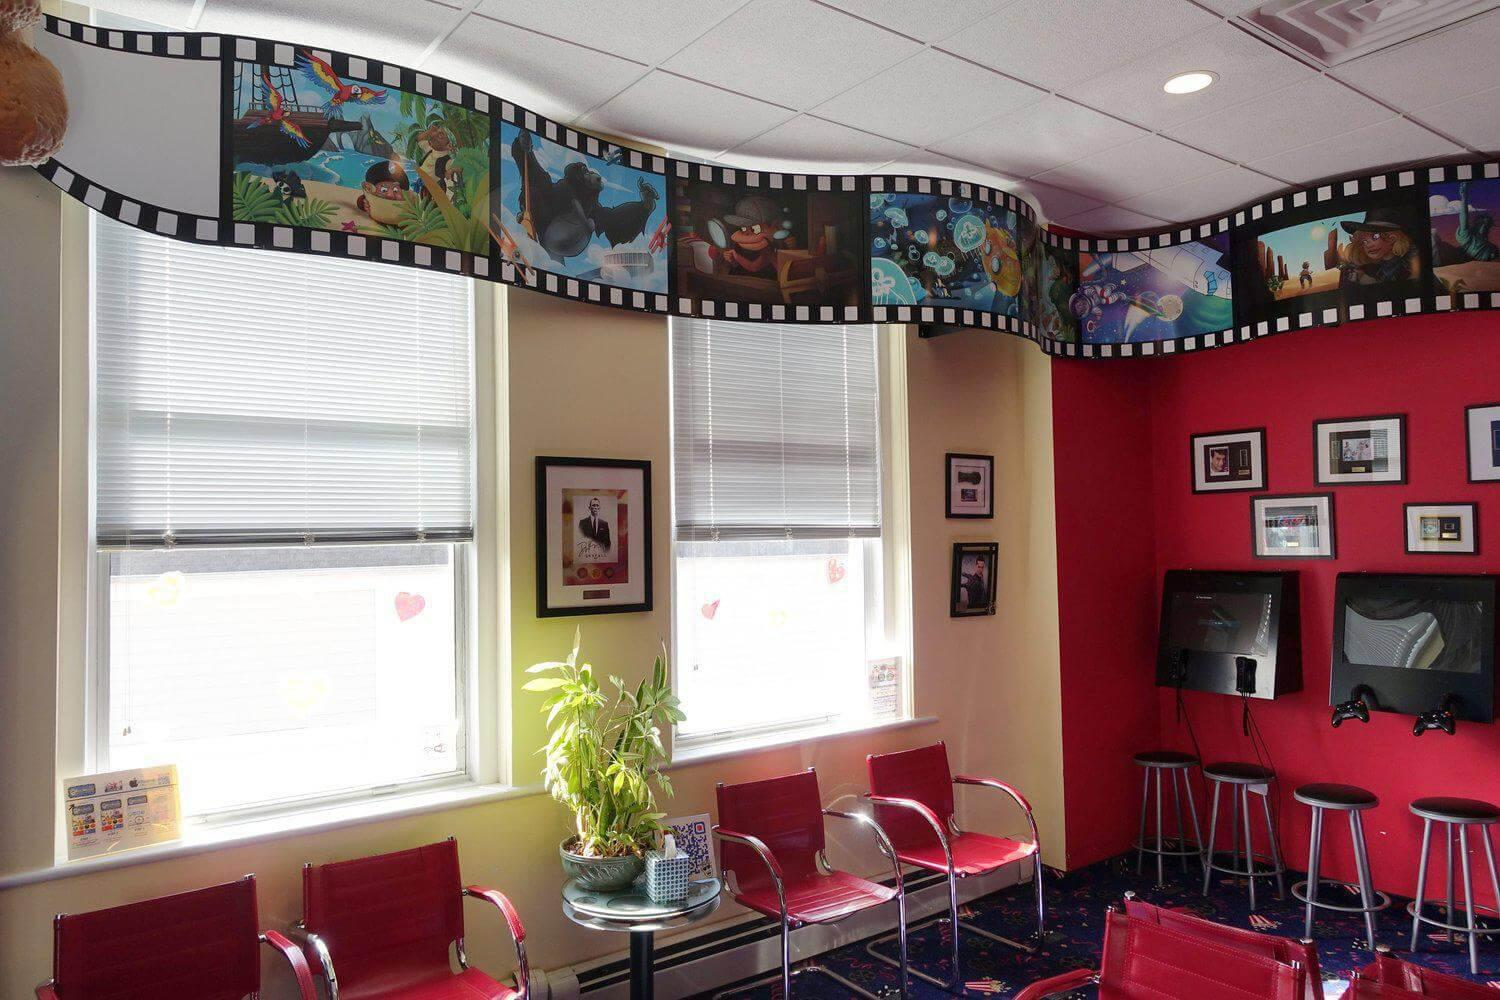 Gallery image about A fun-filled waiting room, for all ages!